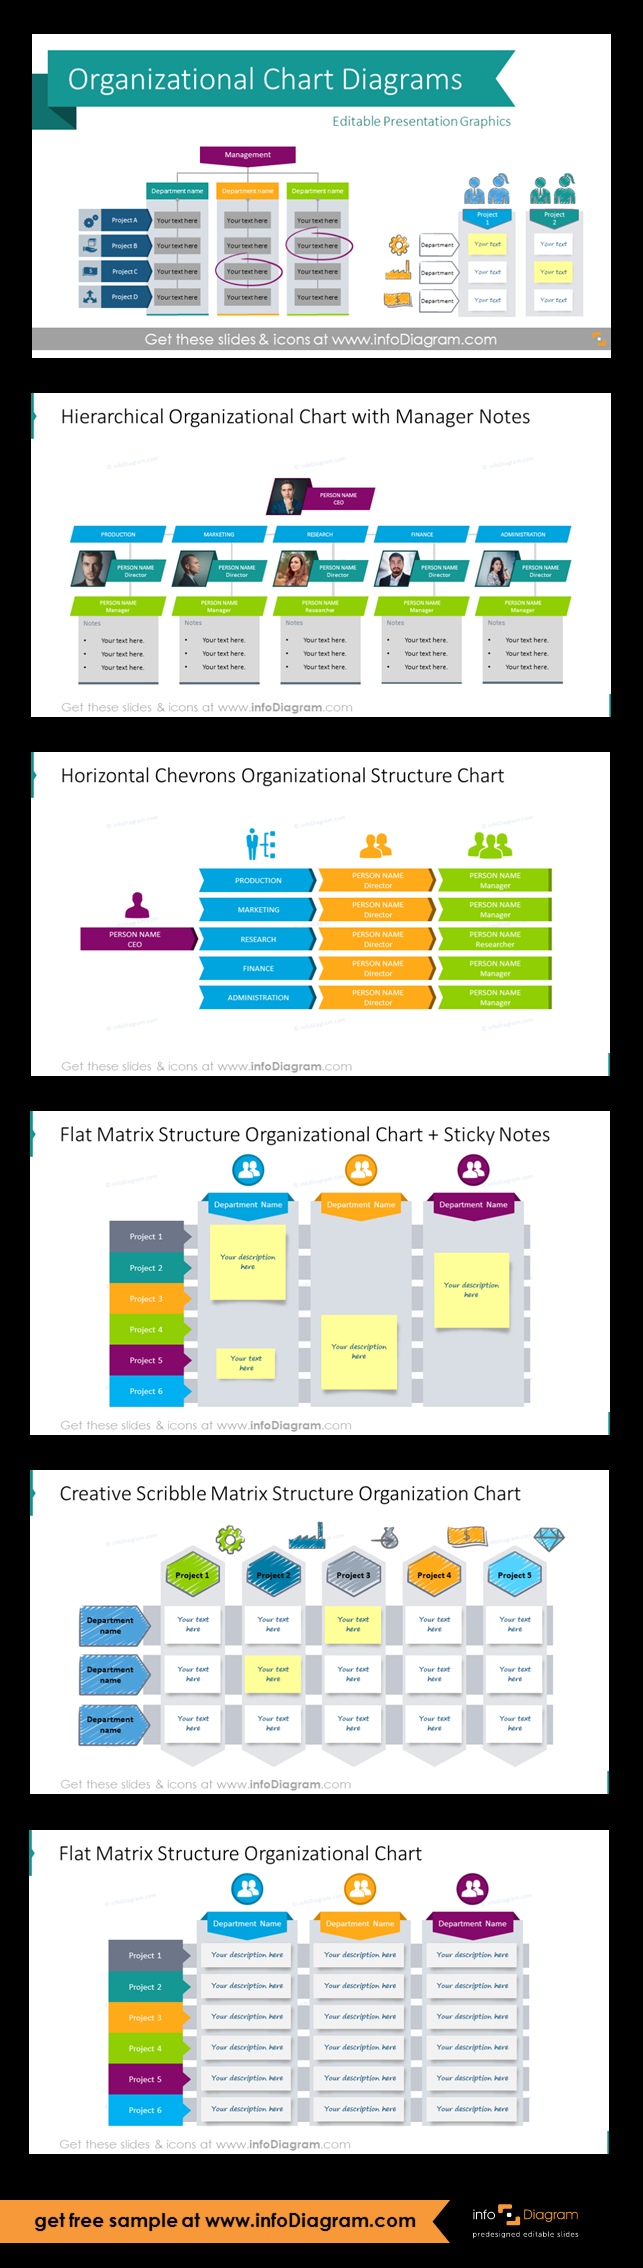 Company organizational structure charts ppt diagrams pinterest creative org chart ppt graphics for presenting a company organizational structure as professional infographics you ccuart Images